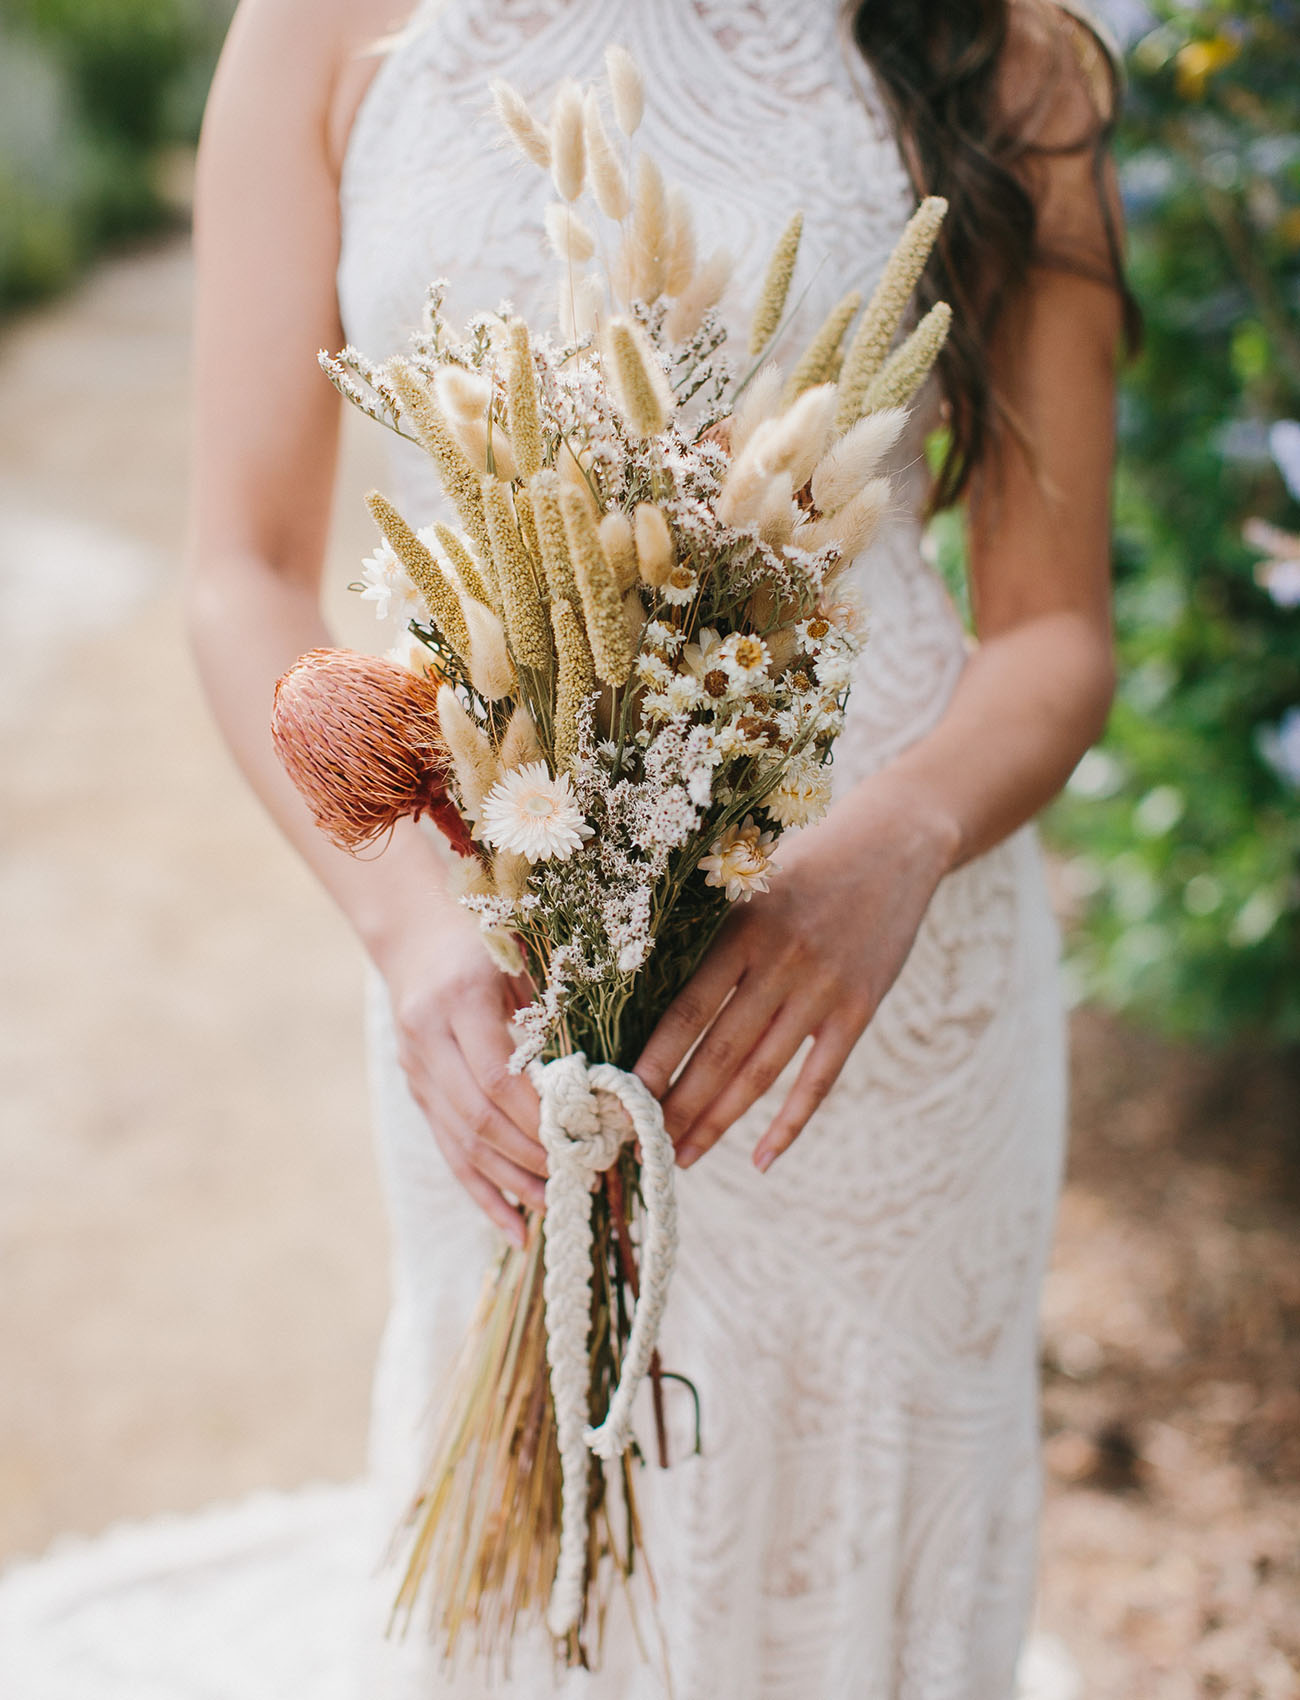 DIY dried floral bouquet with afloral